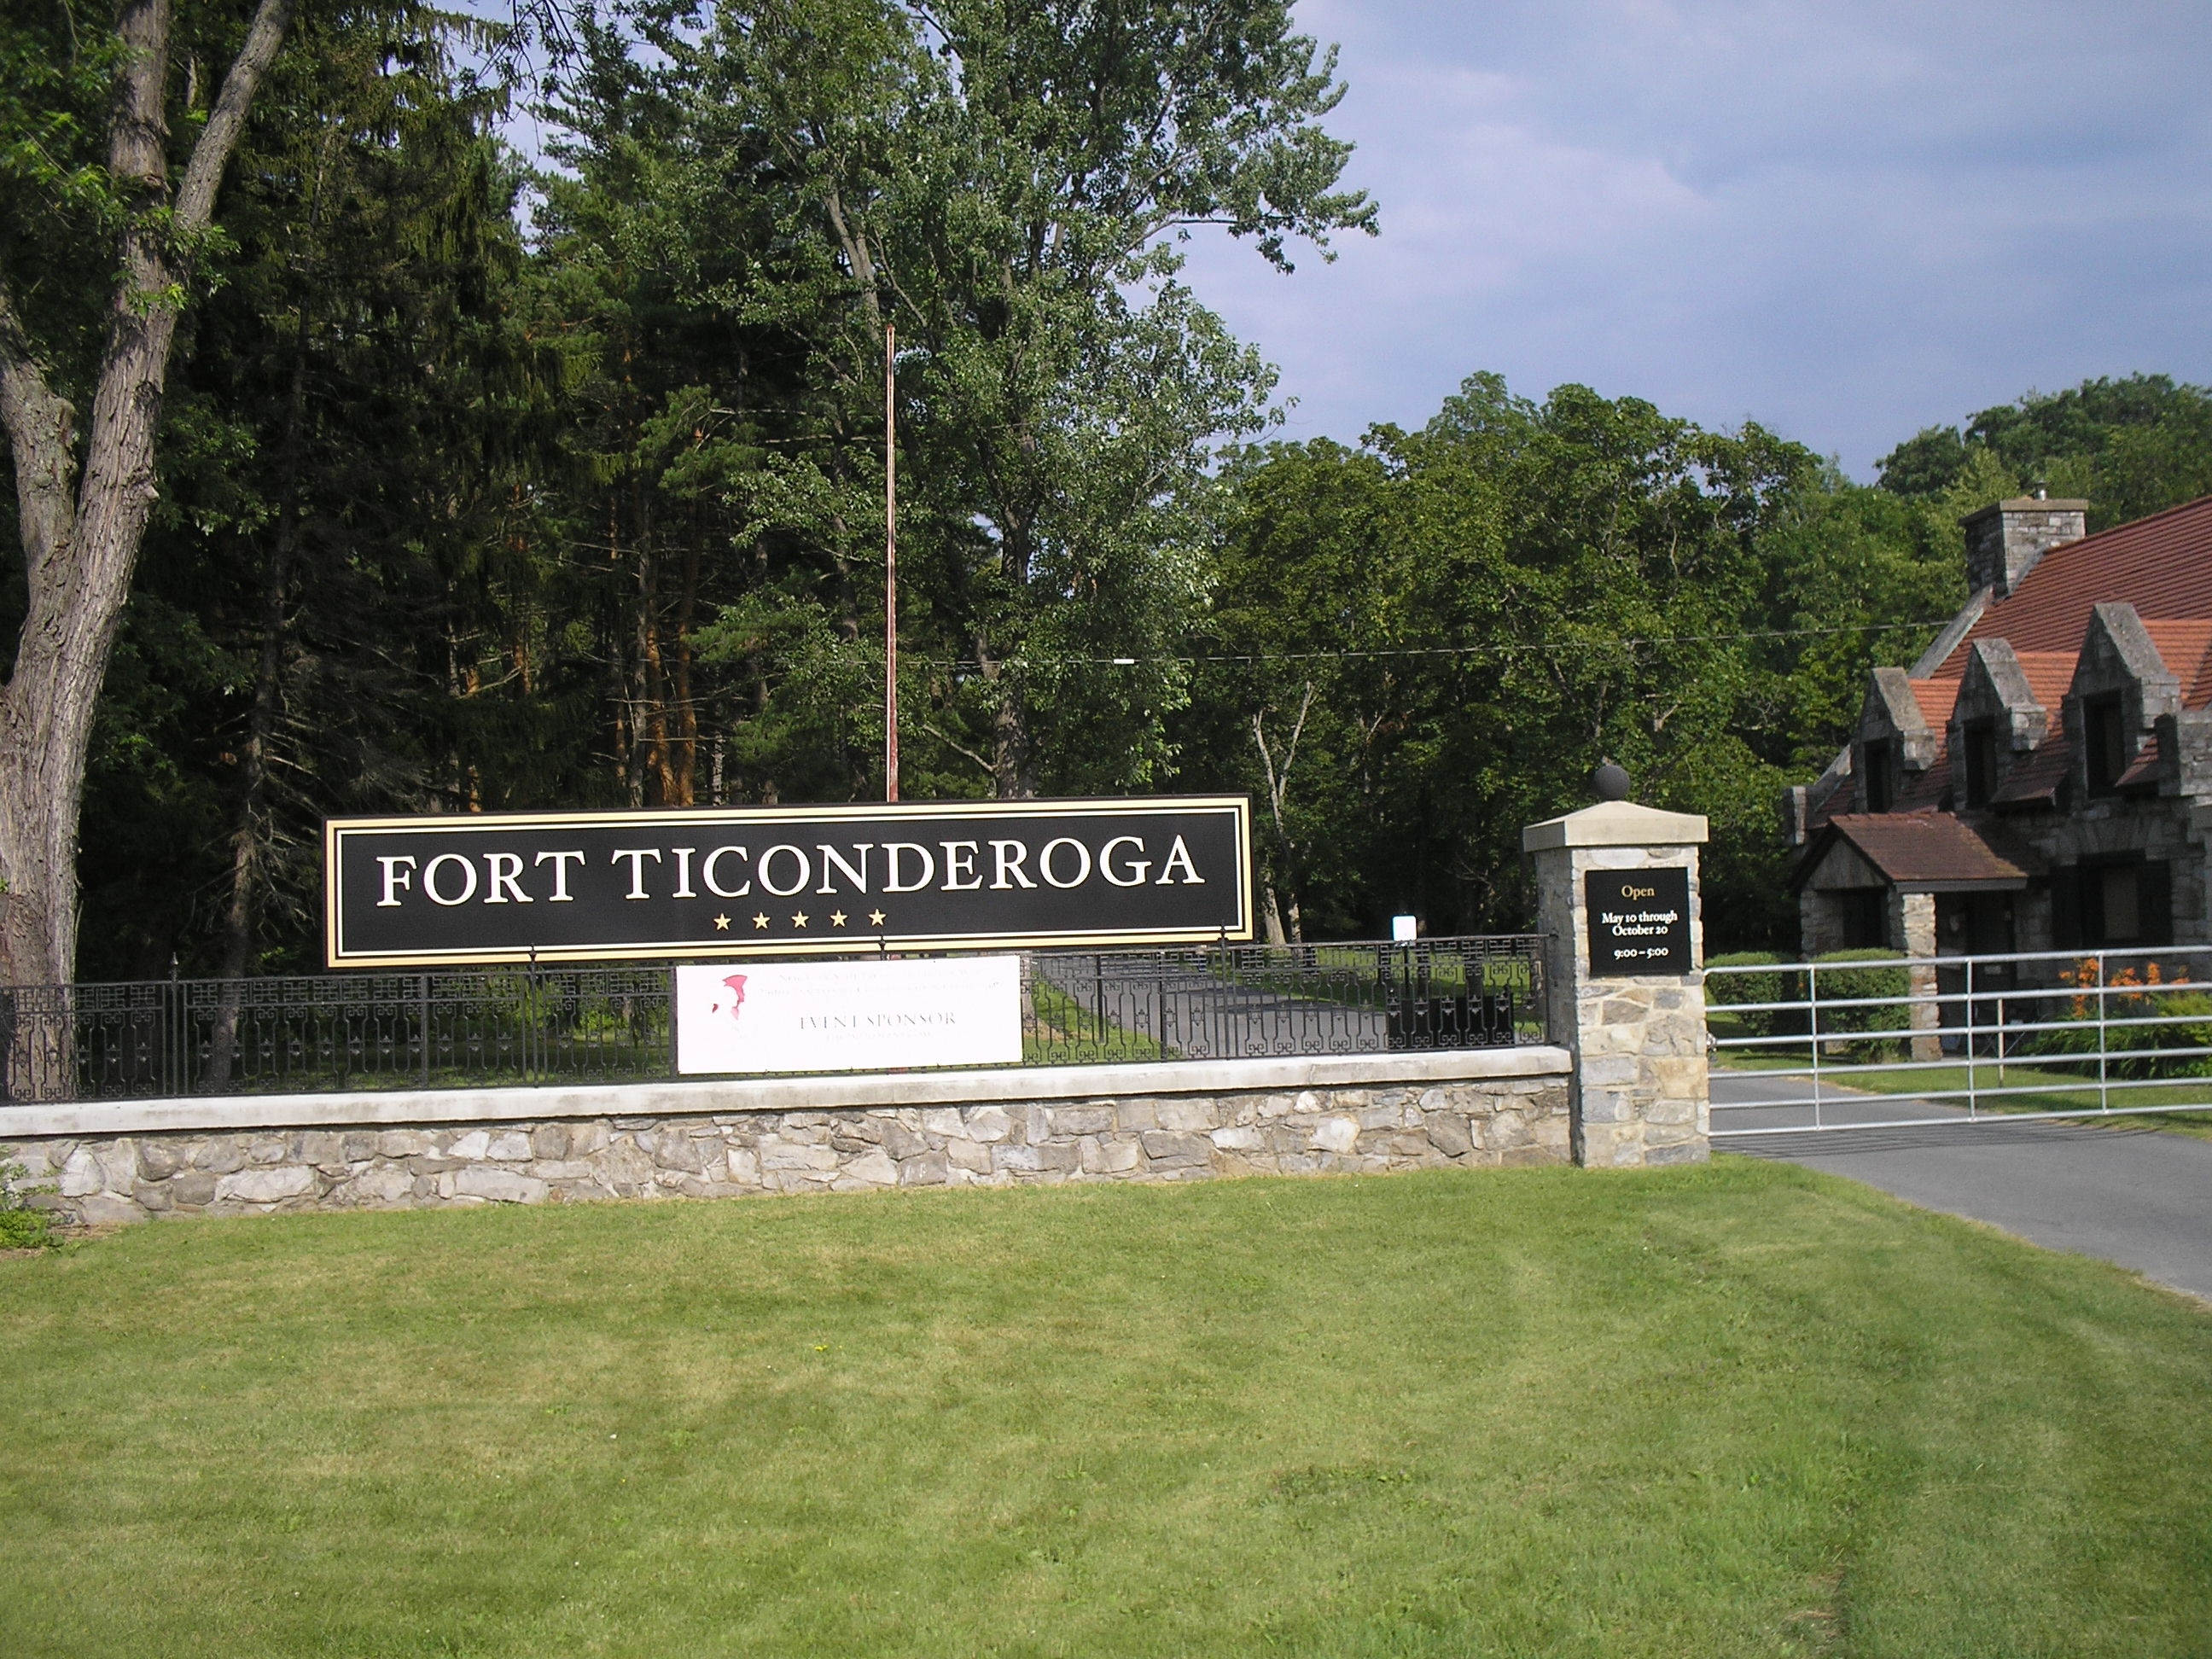 Entrance to Fort Ticonderoga